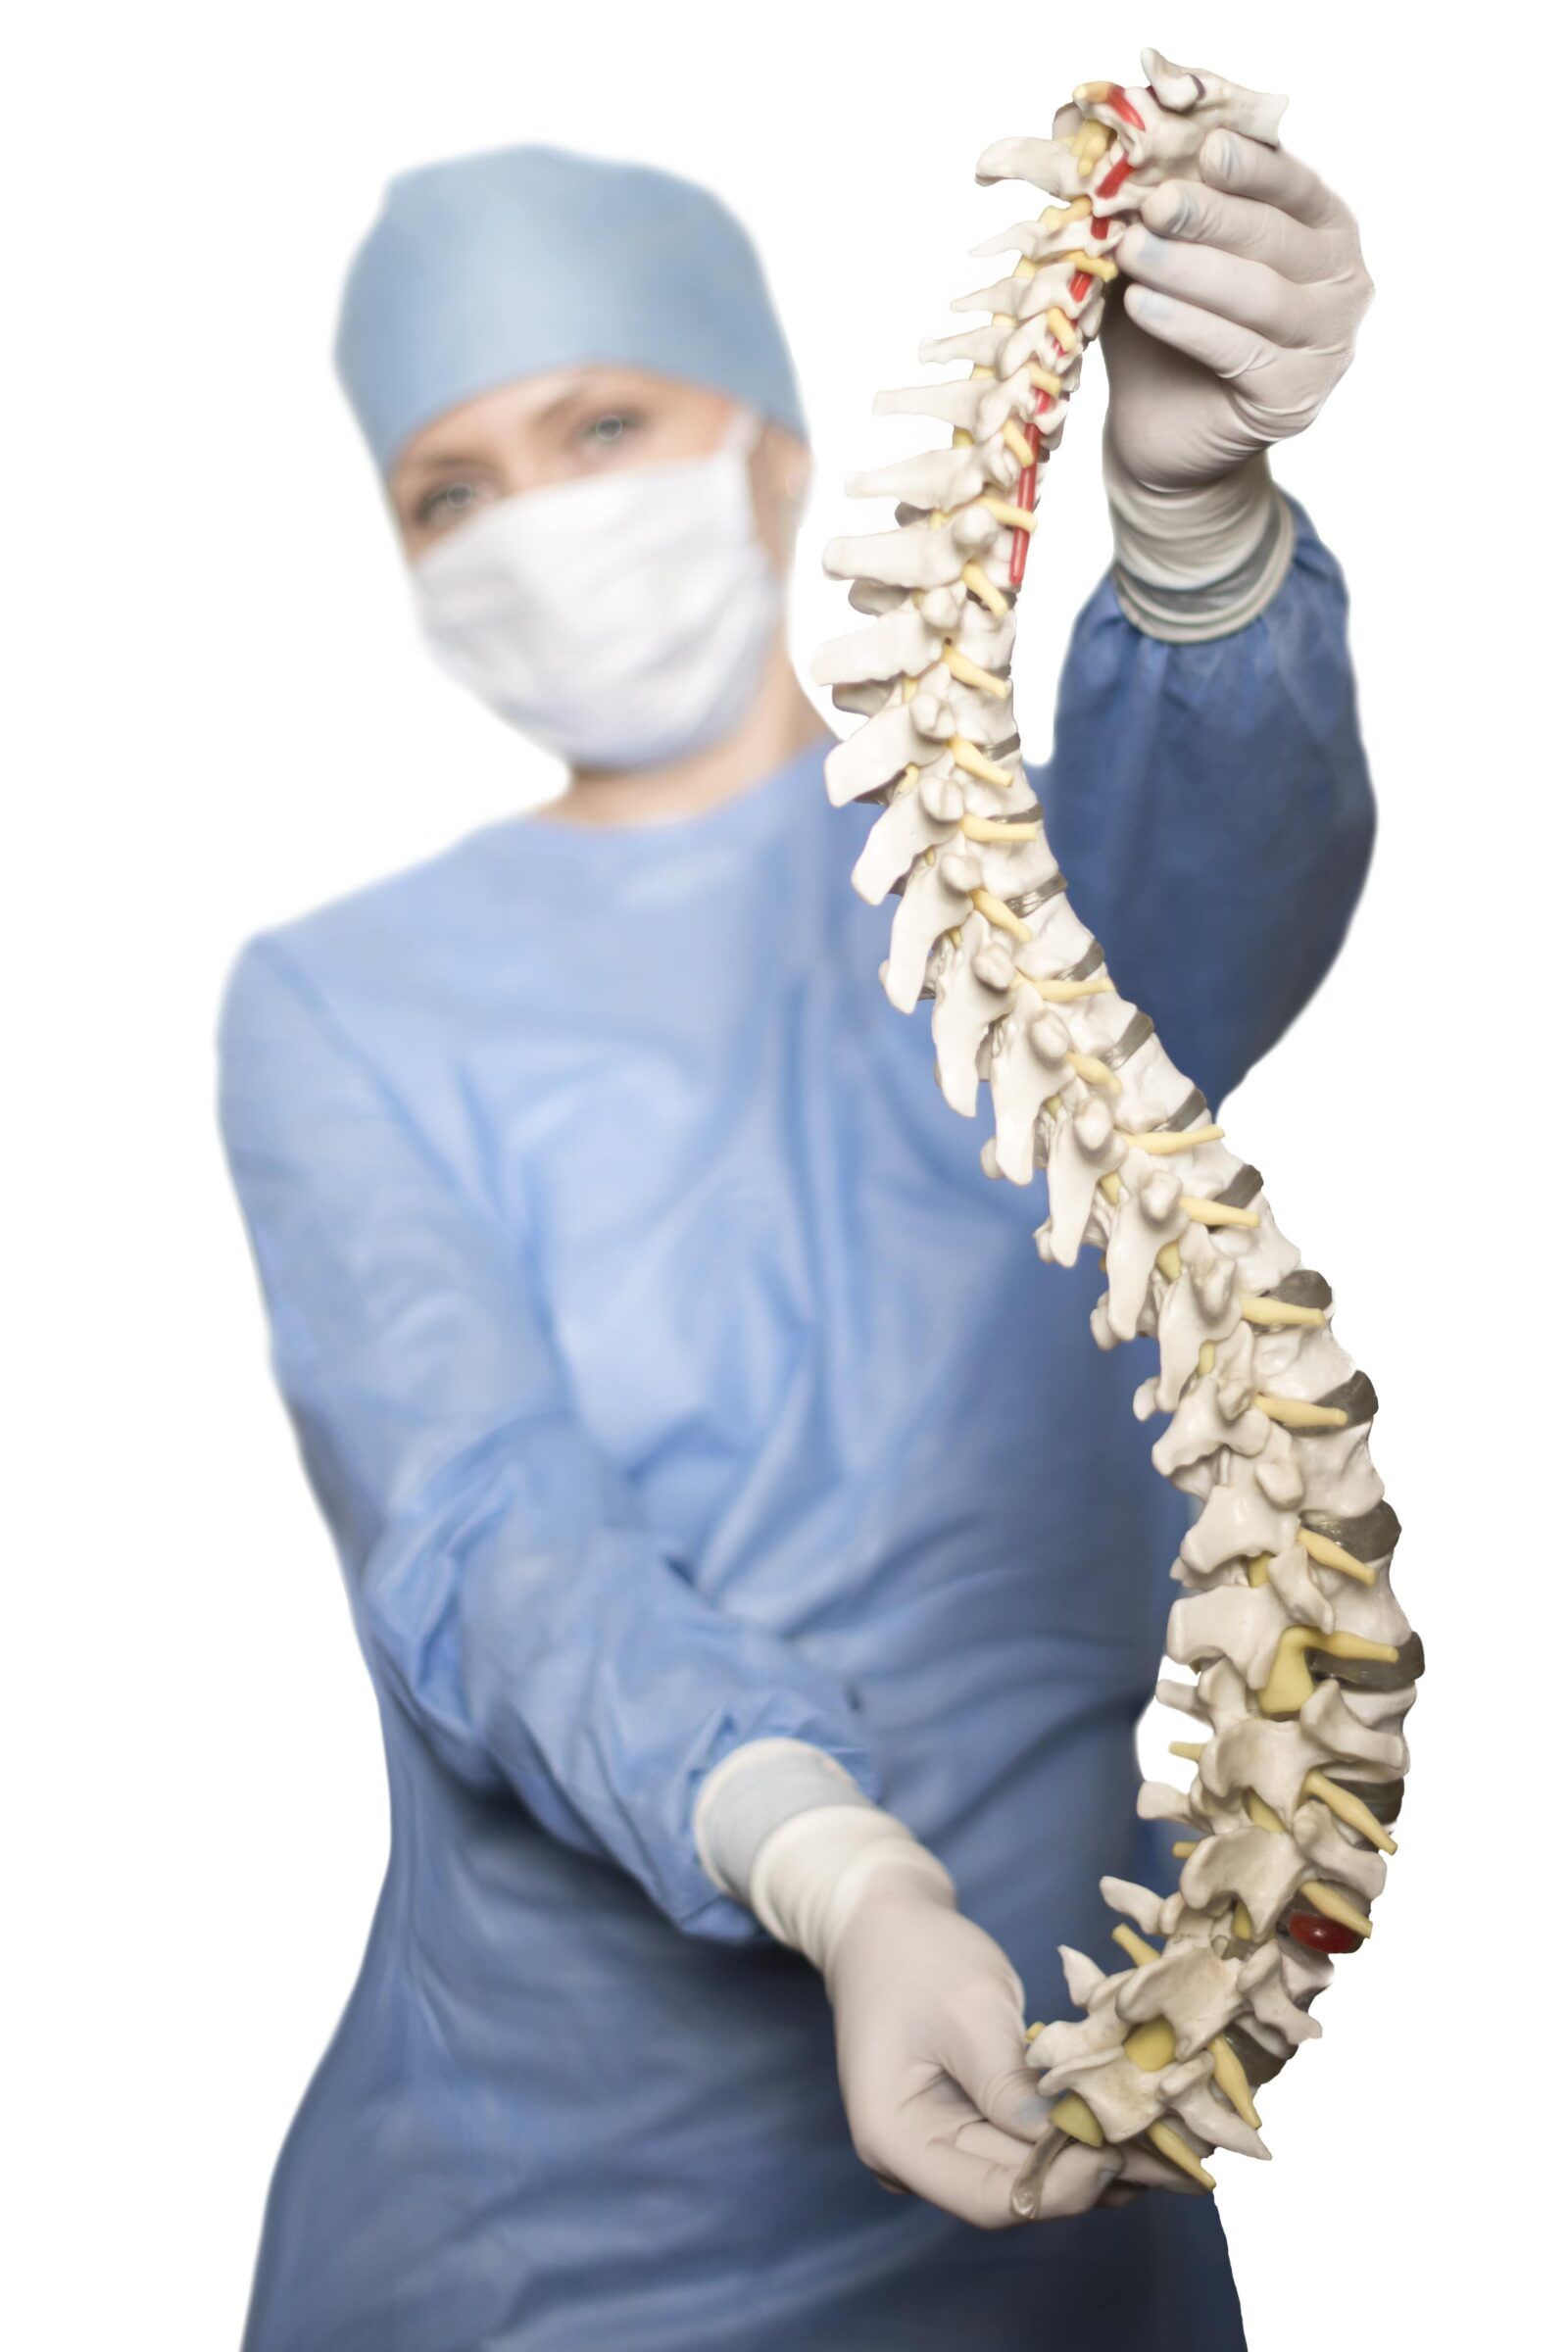 spinal surgeon holding model of the spine